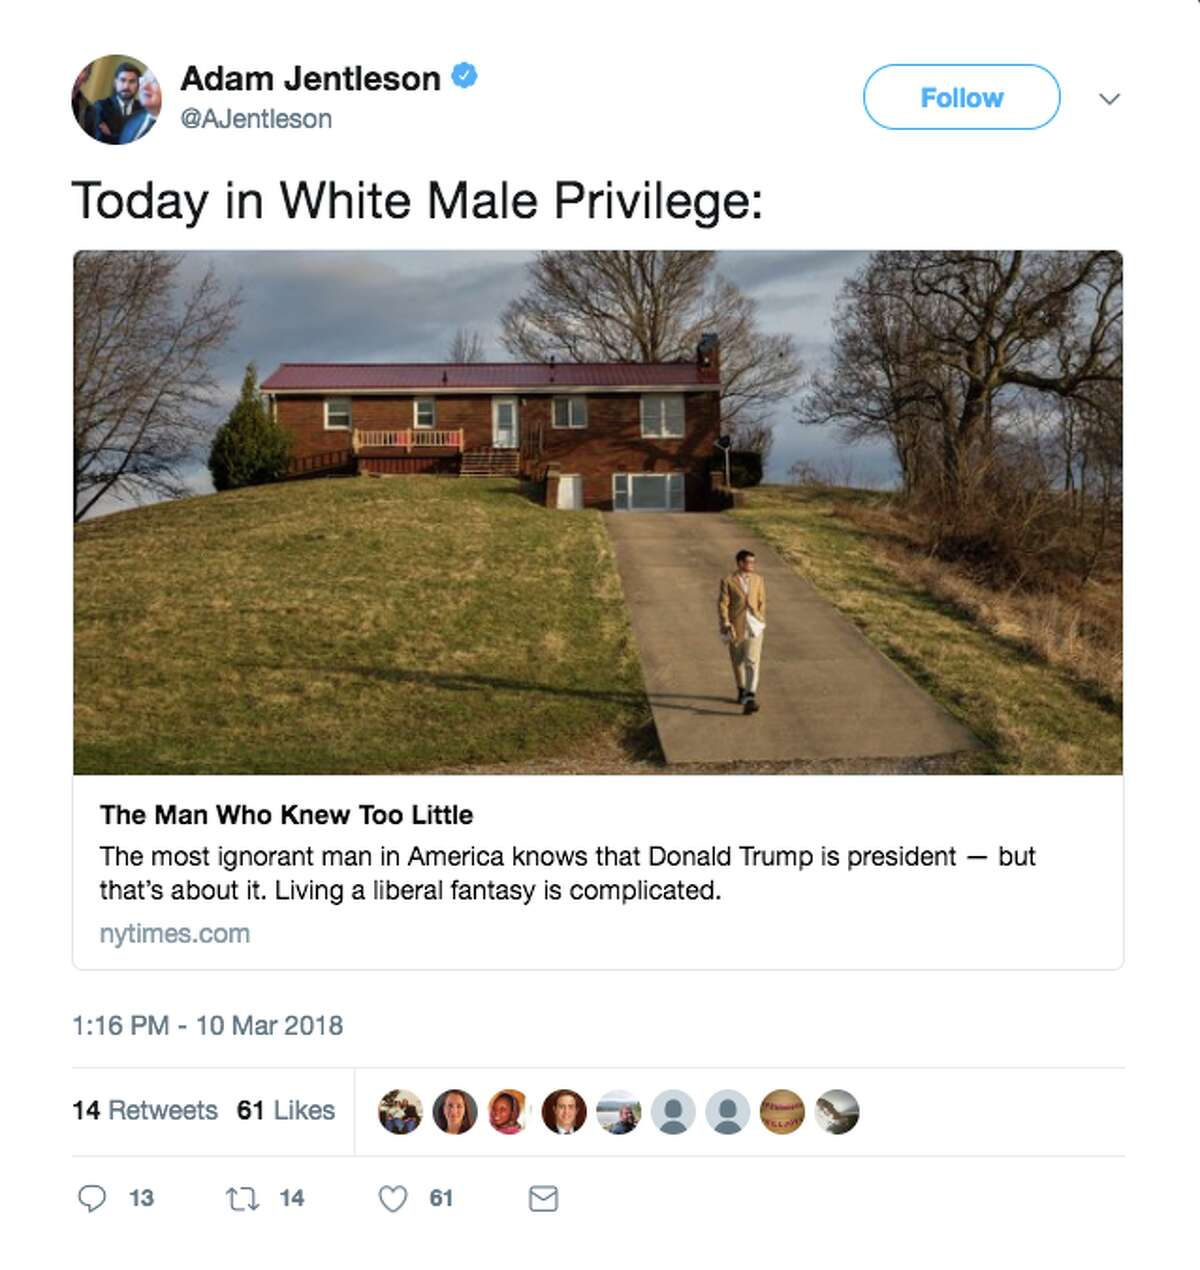 The New York Times' profile of Erik Hagerman was shared widely online. Many criticized Hagerman for electing to isolate himself from current events since President Trump was elected.